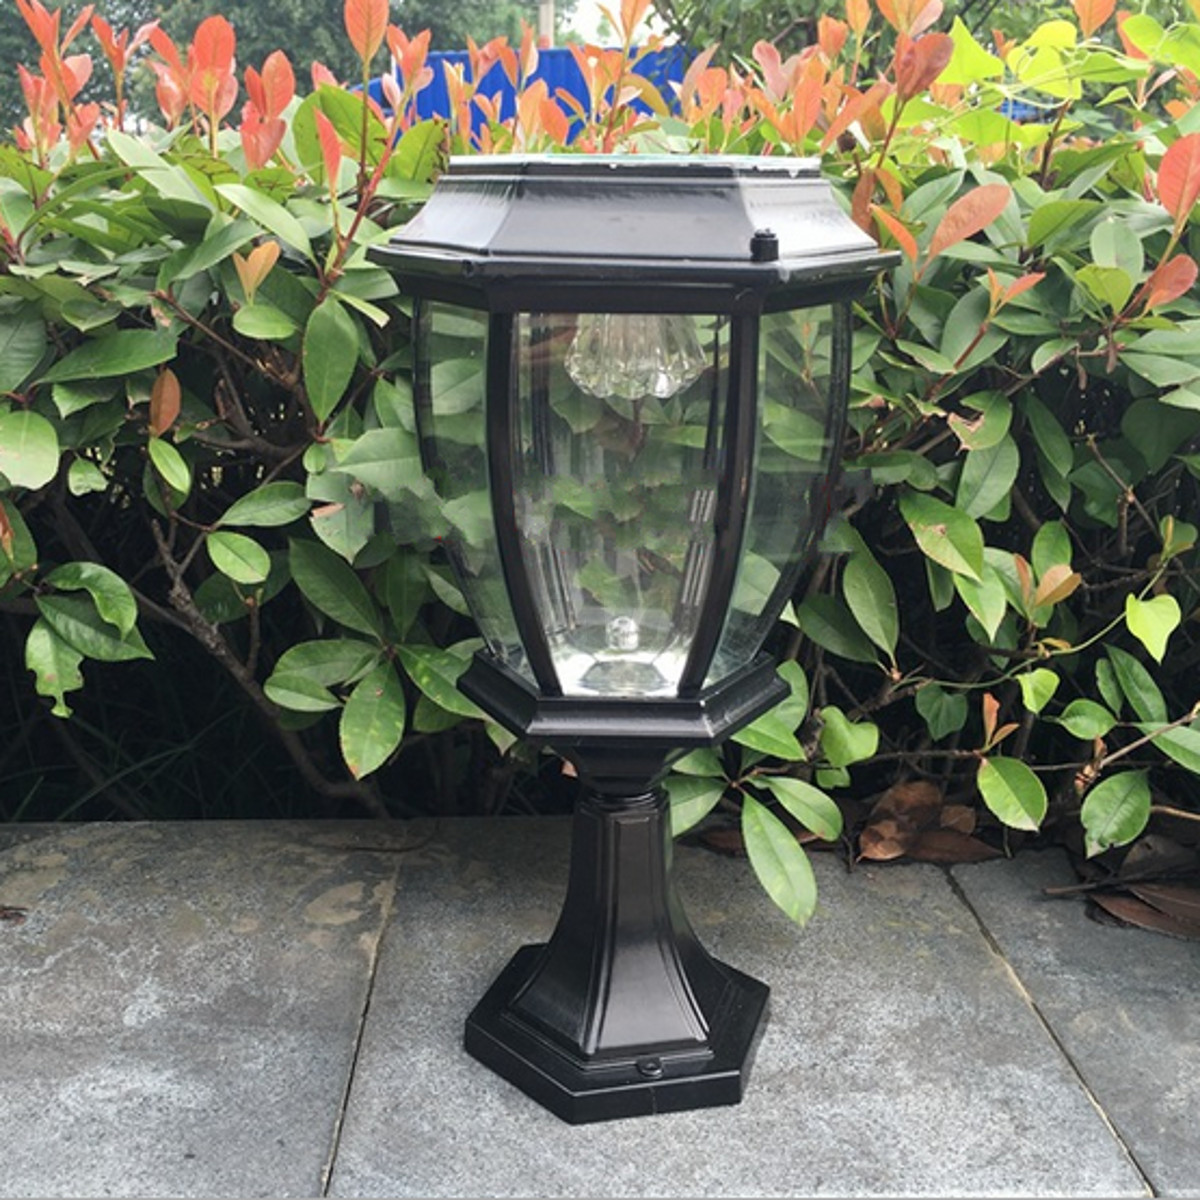 4 Foot Outdoor Solar Powered Lamp Post With: Outdoor Exterior Solar Powered LED Pillar Light Post Lamp